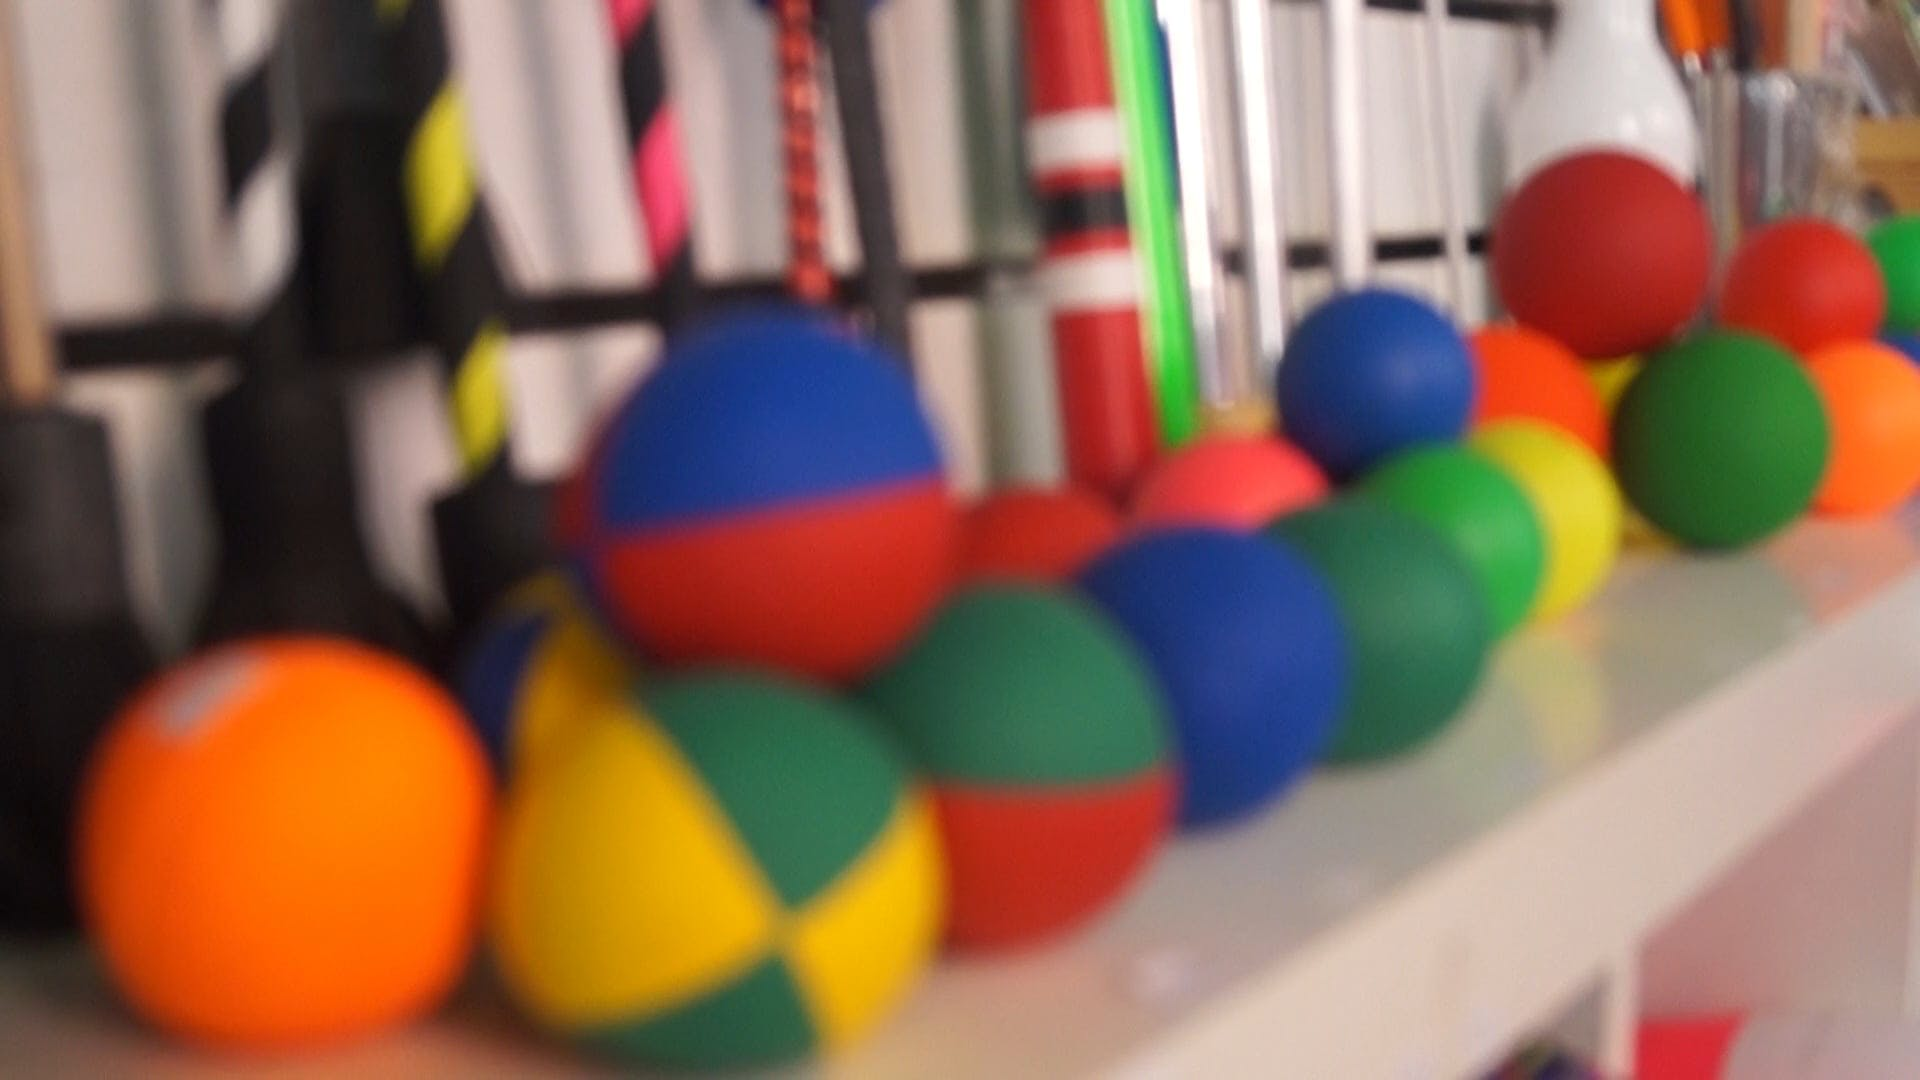 Multi Colored Balls On Display